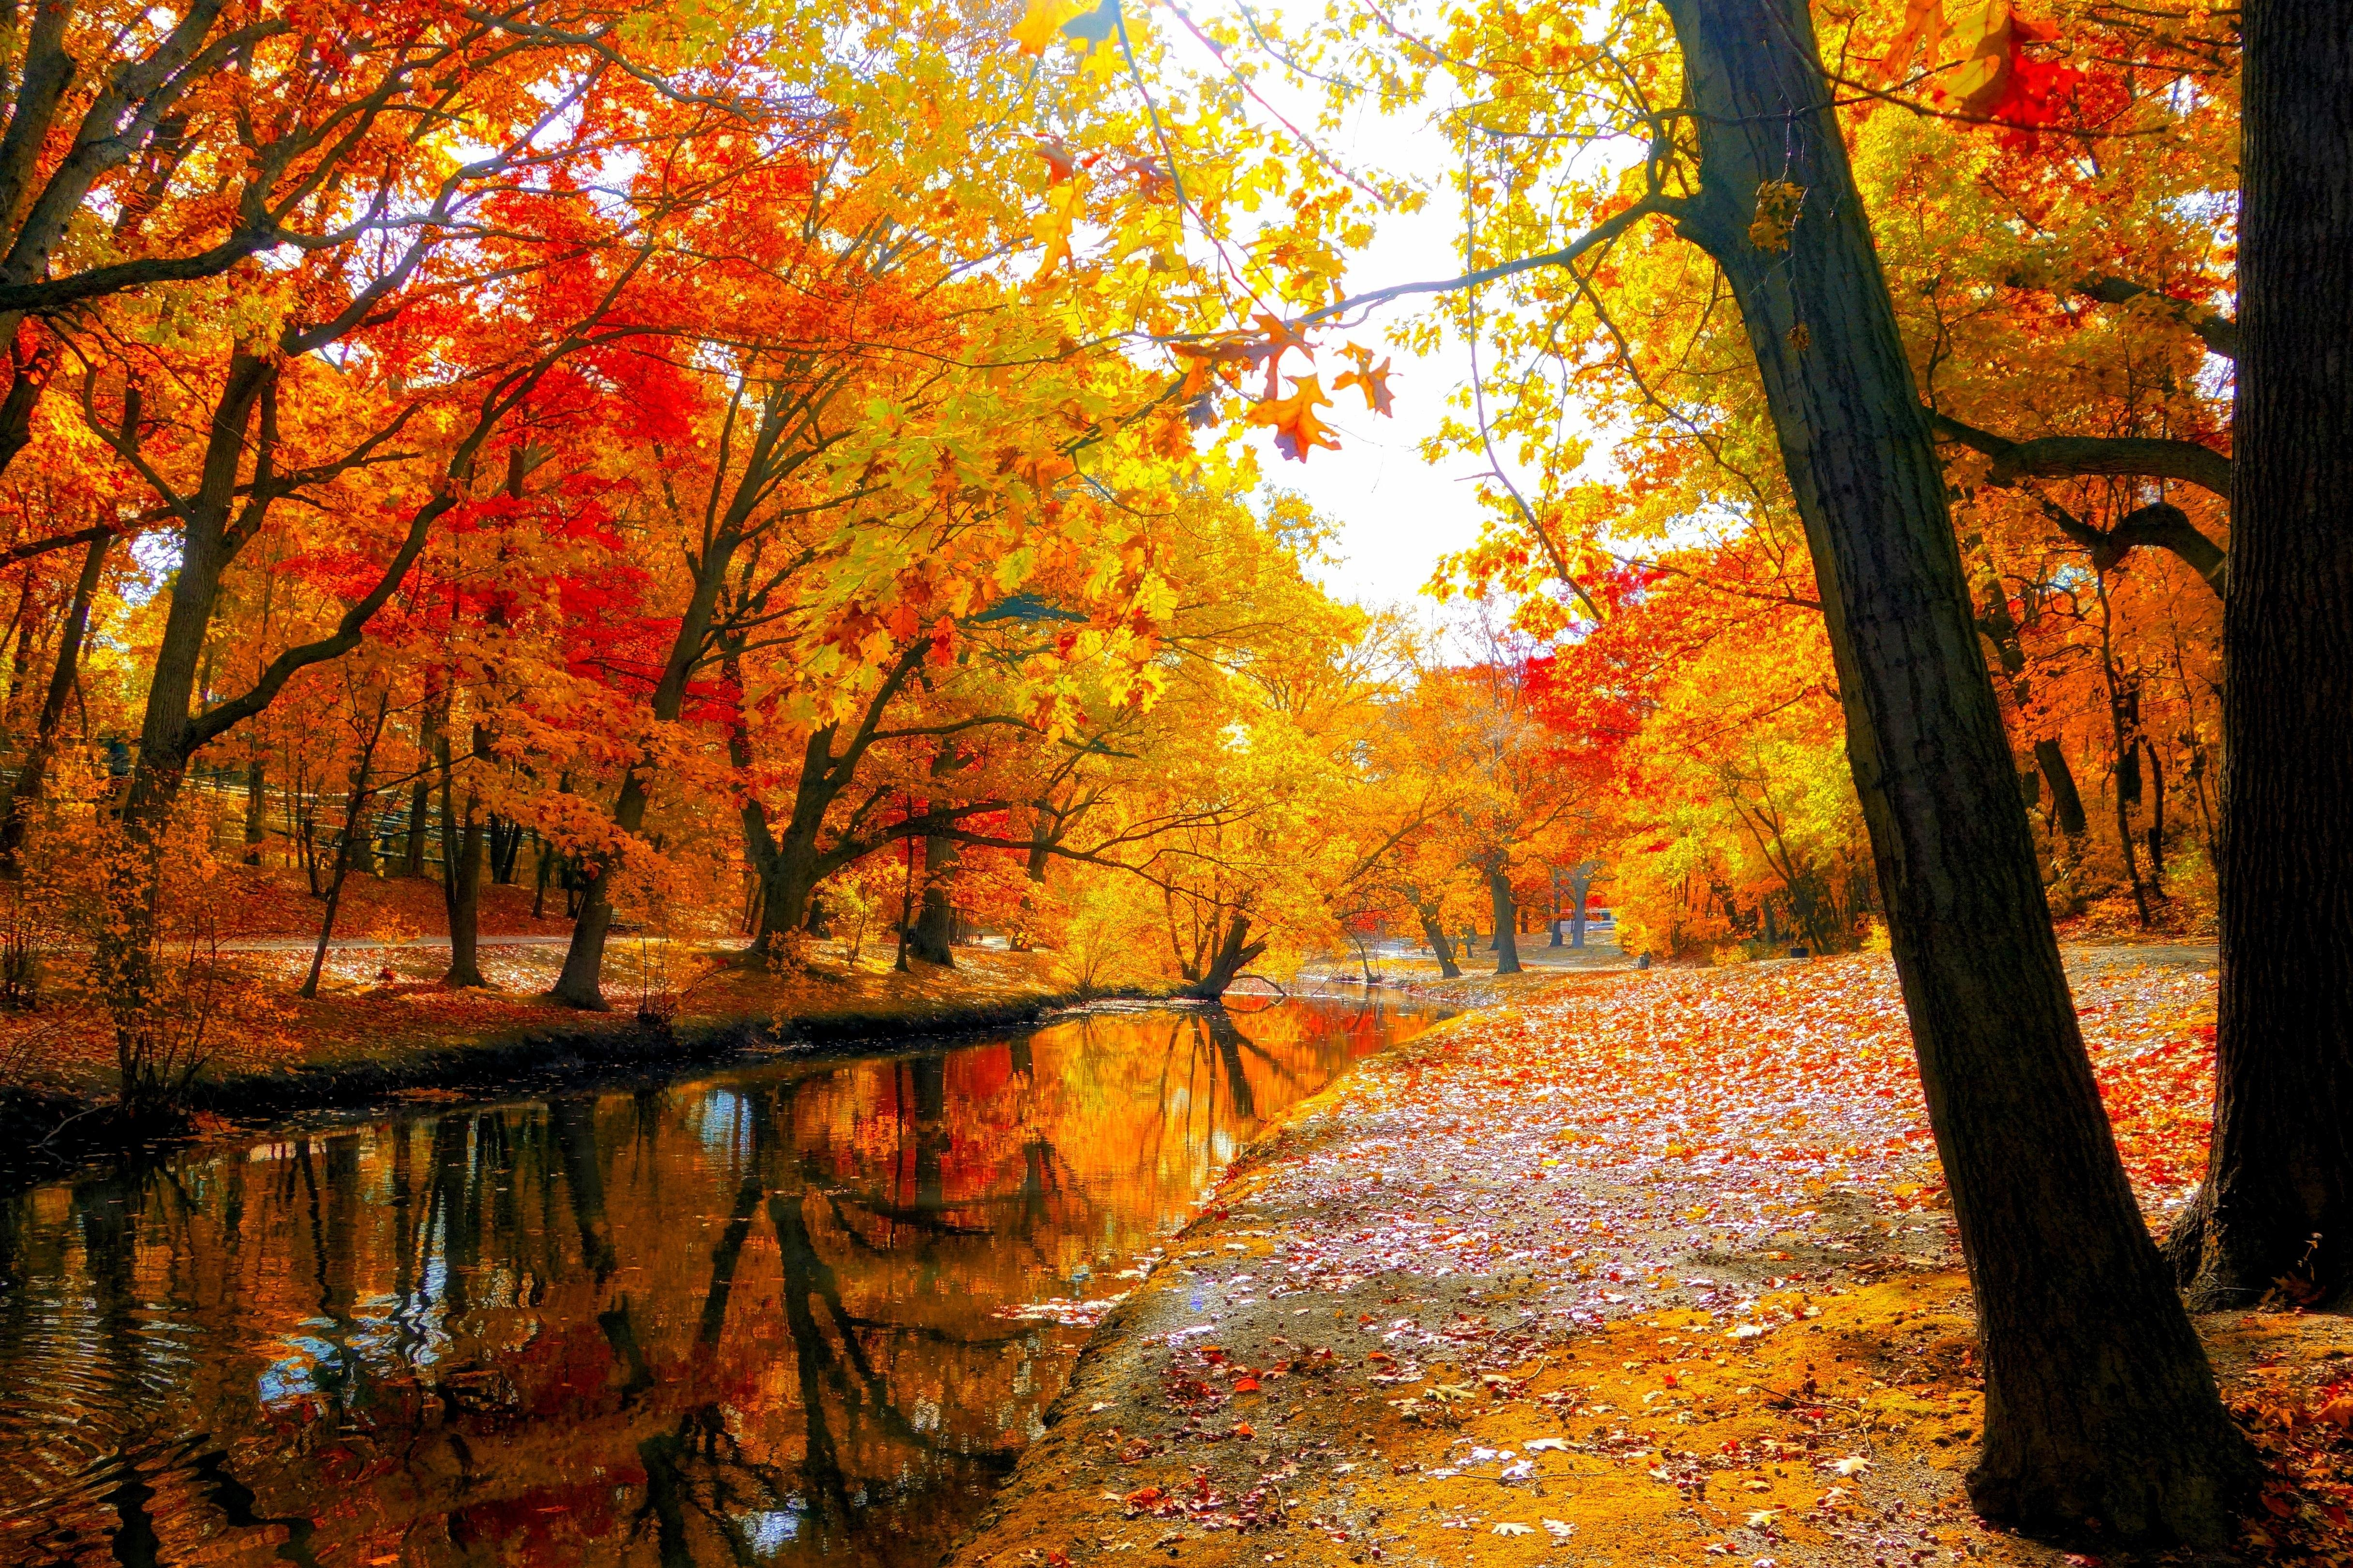 Wallpaper Images Of Fall Trees Lined Lake Autumn Fall Landscape Nature Tree Forest Leaf Leaves